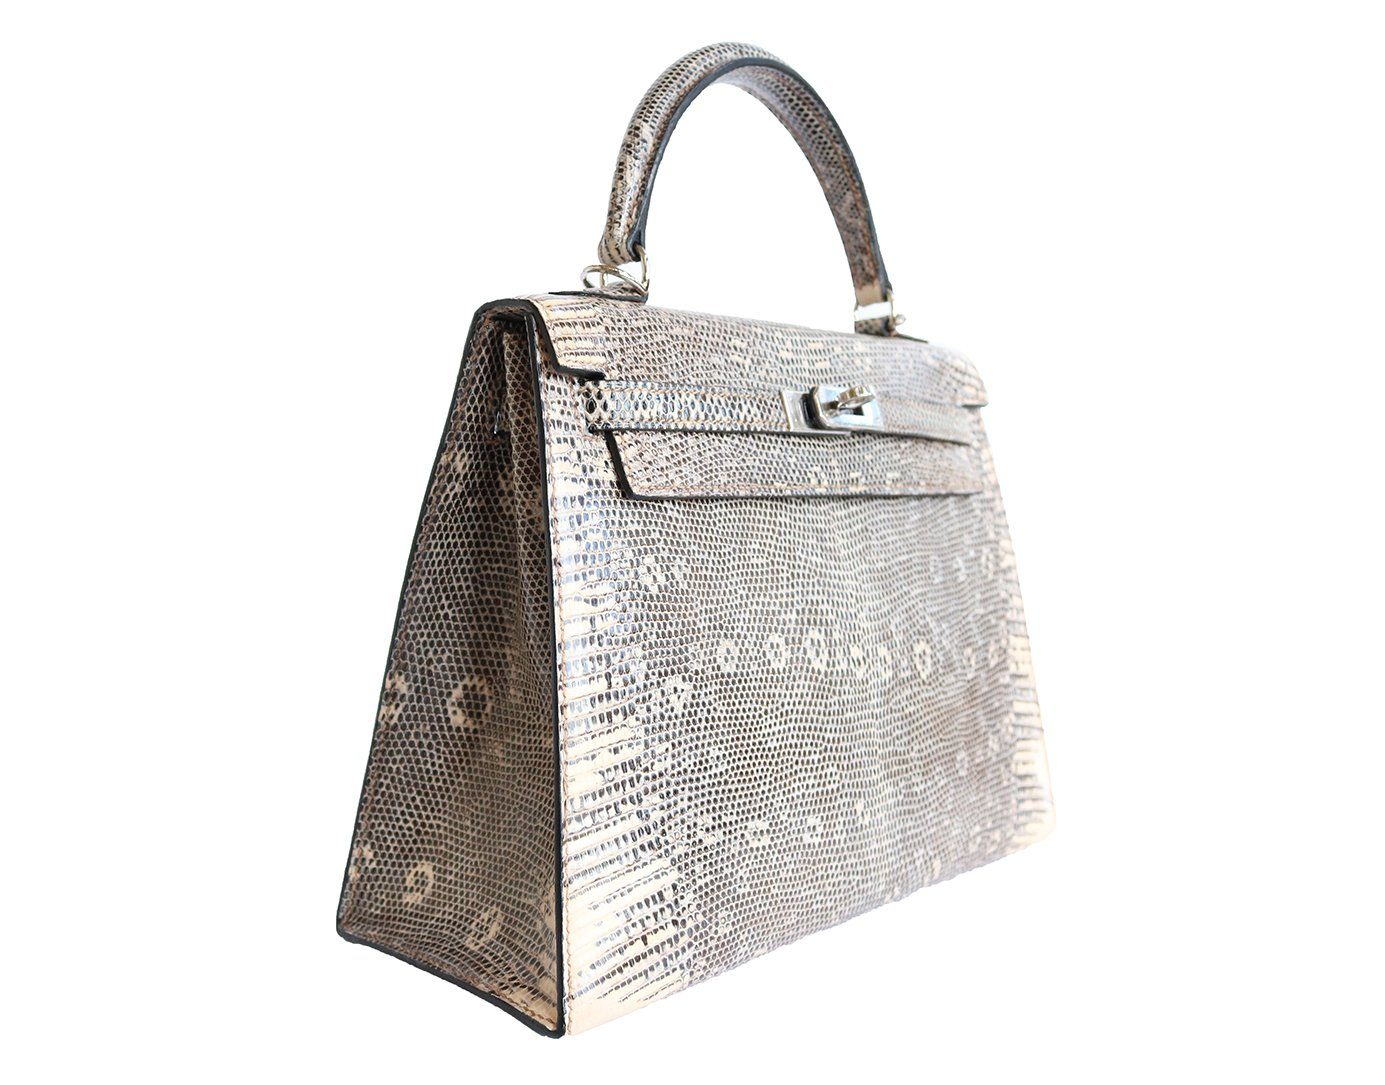 Hermes Lizard Skin Kelly Handbag